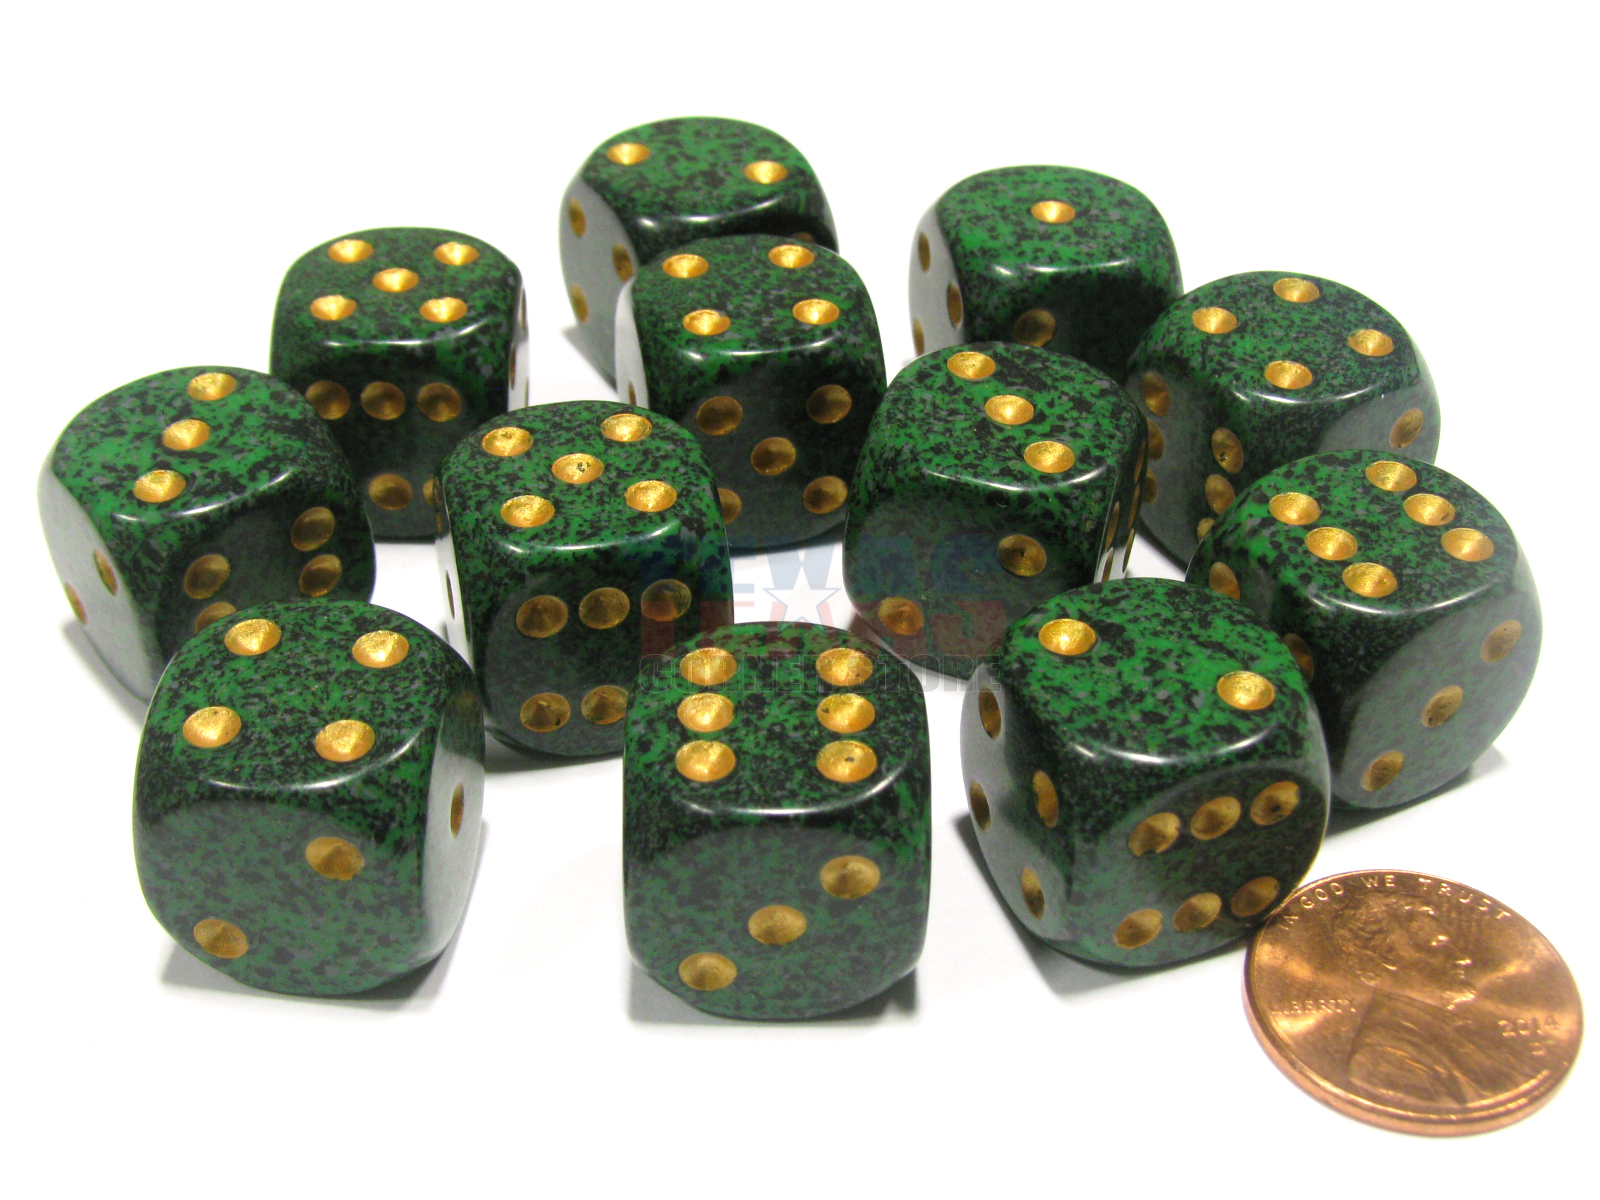 Speckled 16mm D6 RPG Chessex Dice Recon Green Black and White 10 Dice